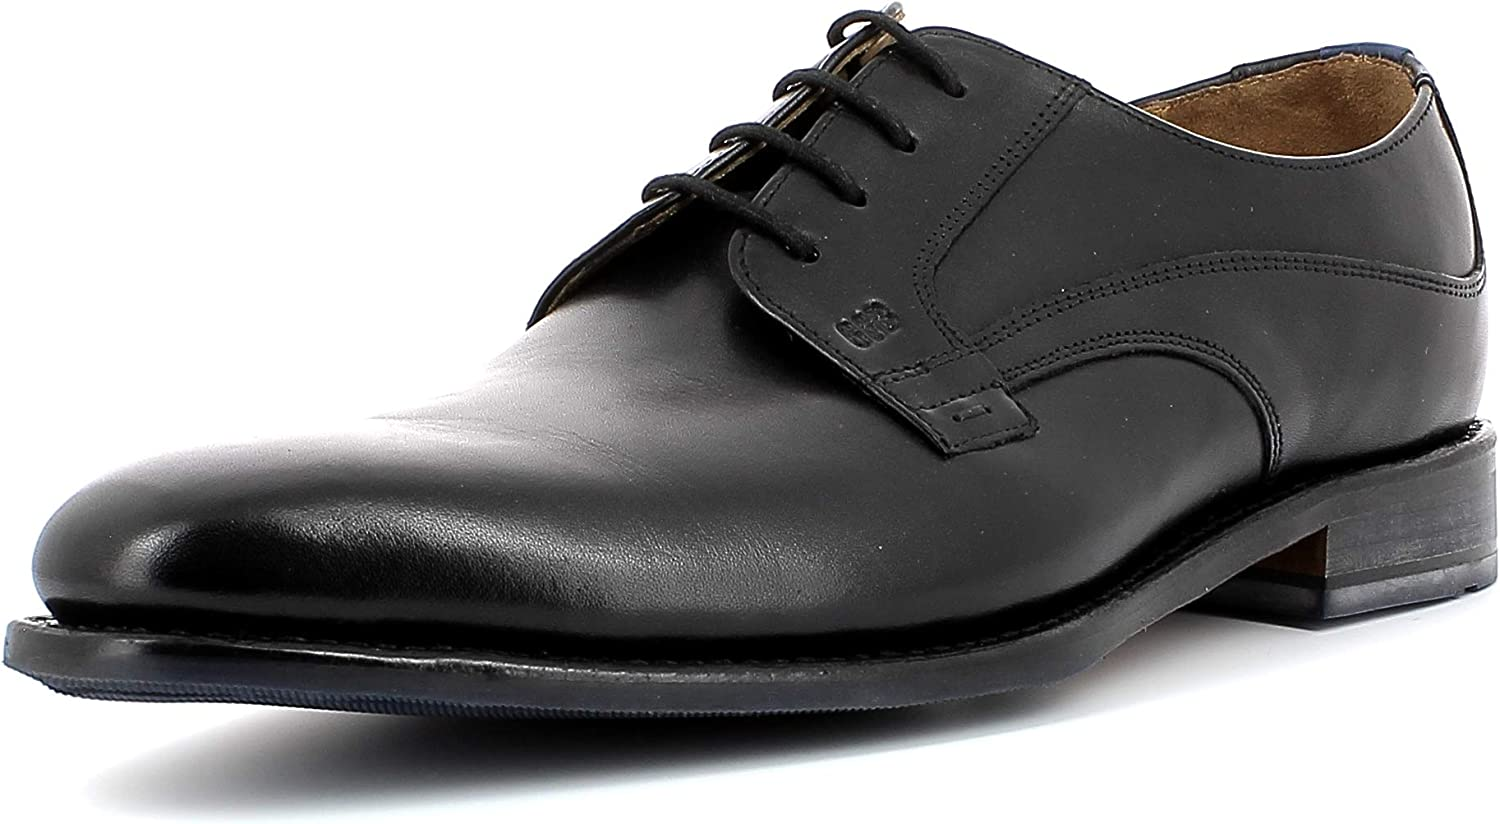 Gordon & Bros Men's Milan 5928 Lace-Up Flats